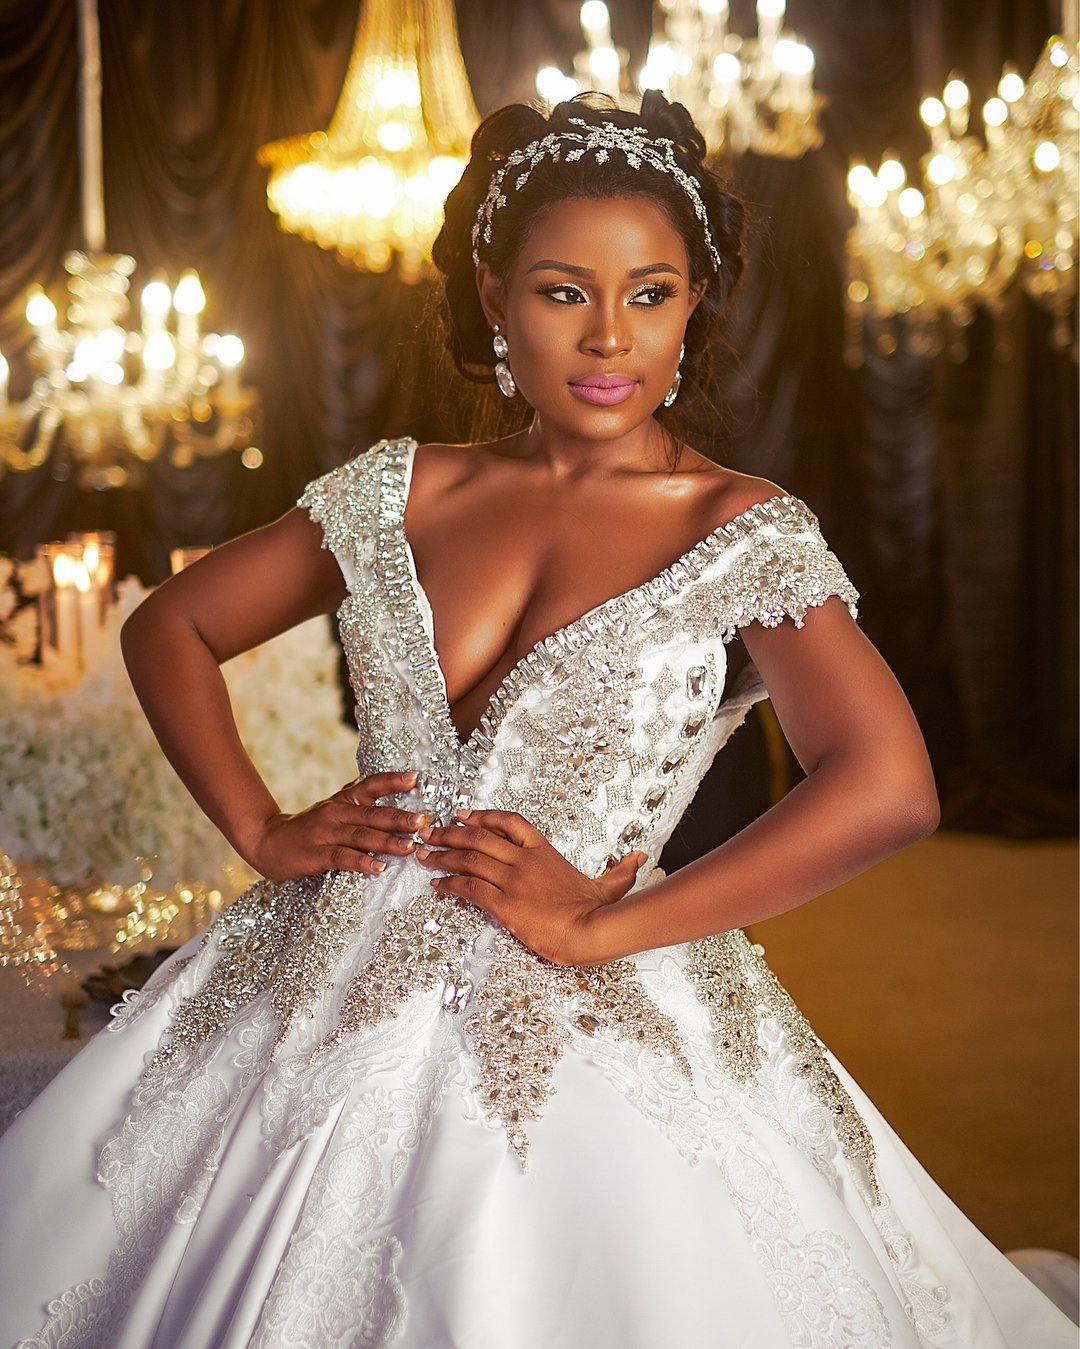 Photos Sima Brew Releases Another Set Of Her Bridal Dream Wedding Gowns